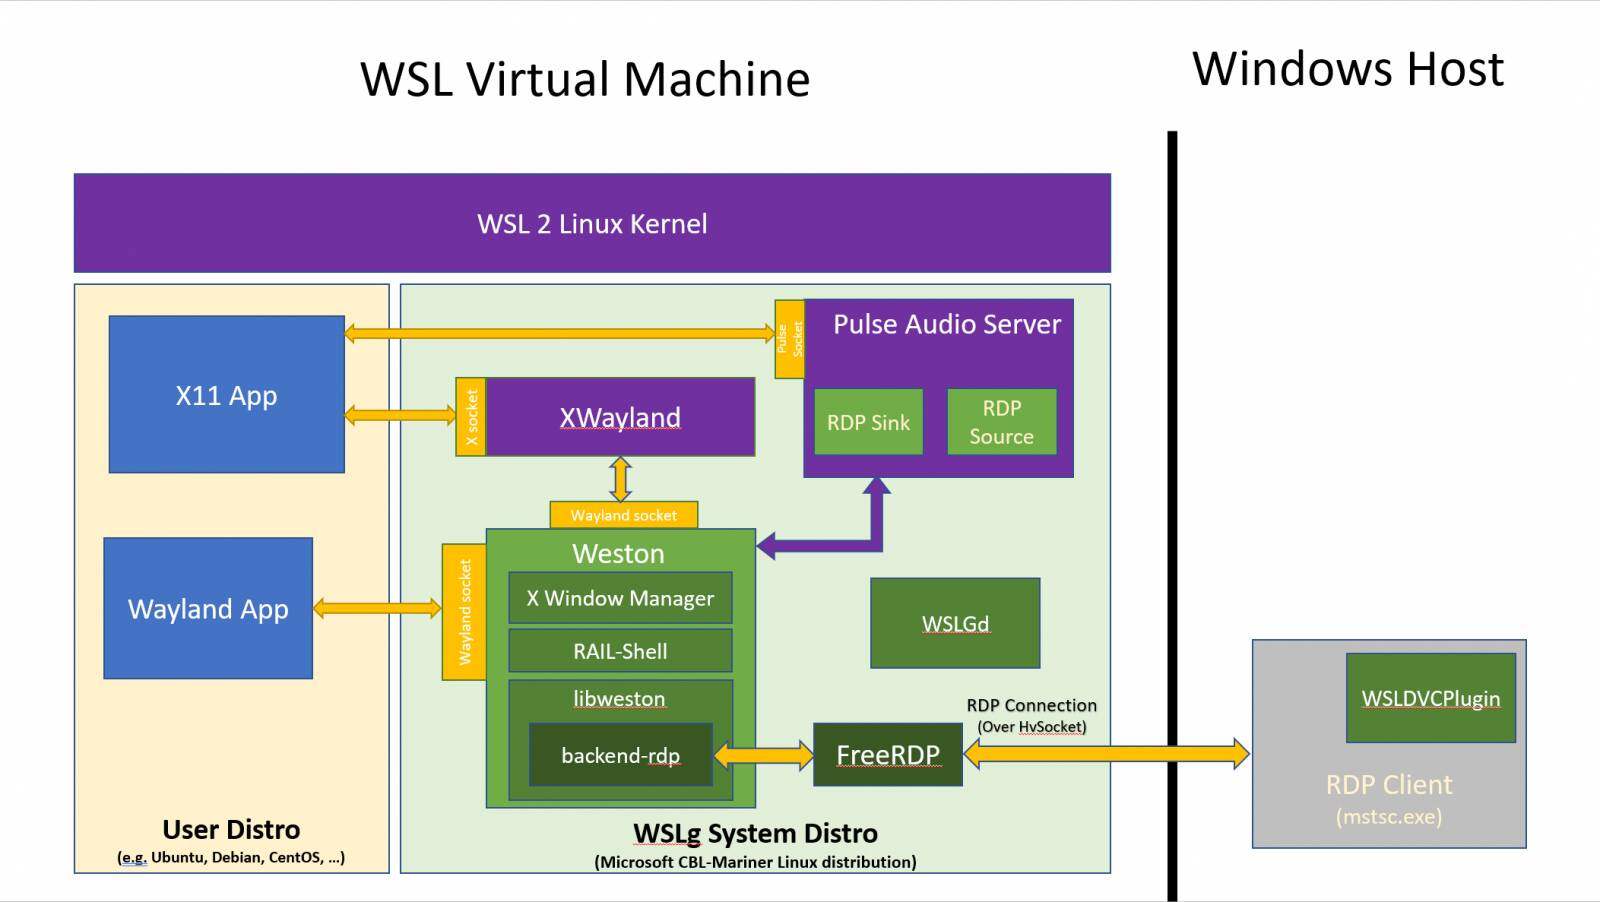 WSLg - Windows Subsystem for Linux GUI